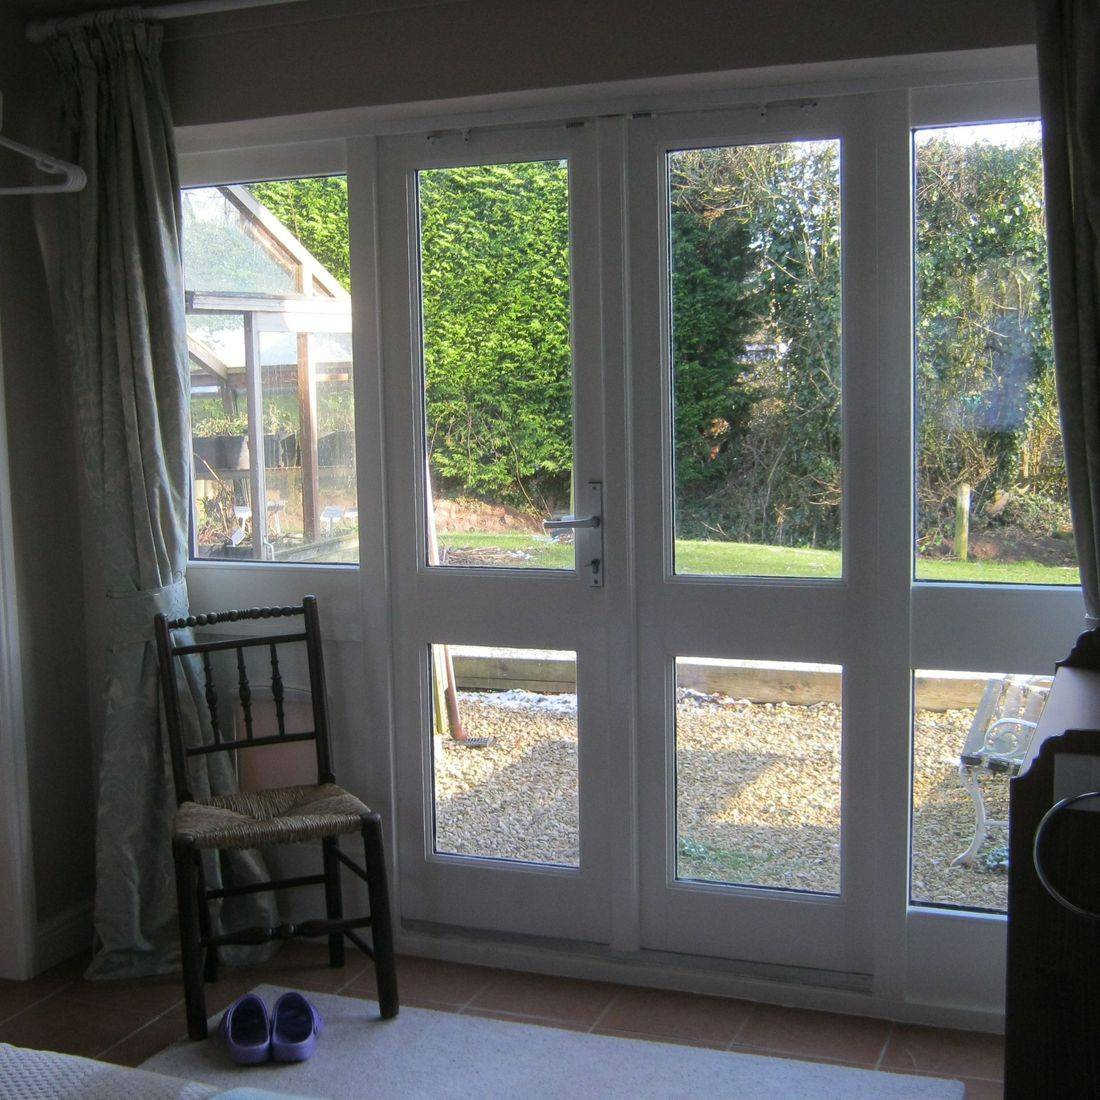 cottage bed and breakfast room french windows to garden